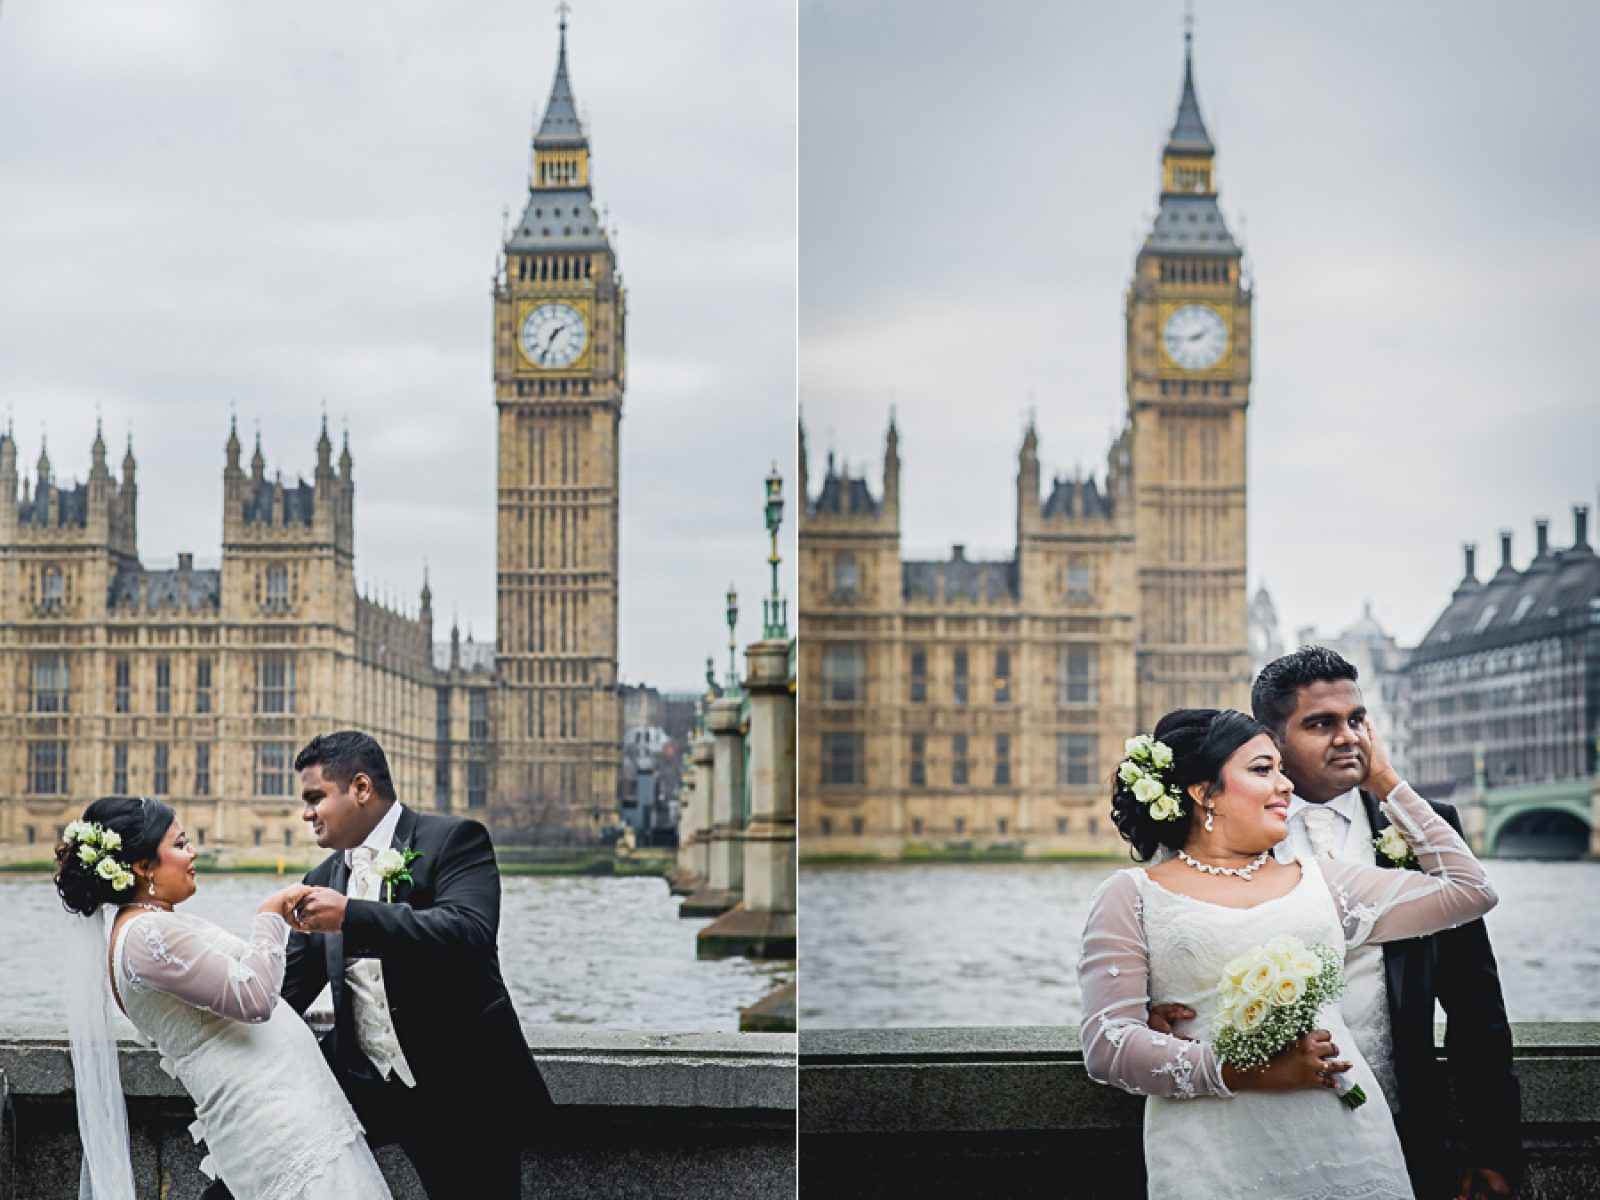 381 1600x1200 - Darshani and Anthony - wedding photographer in London